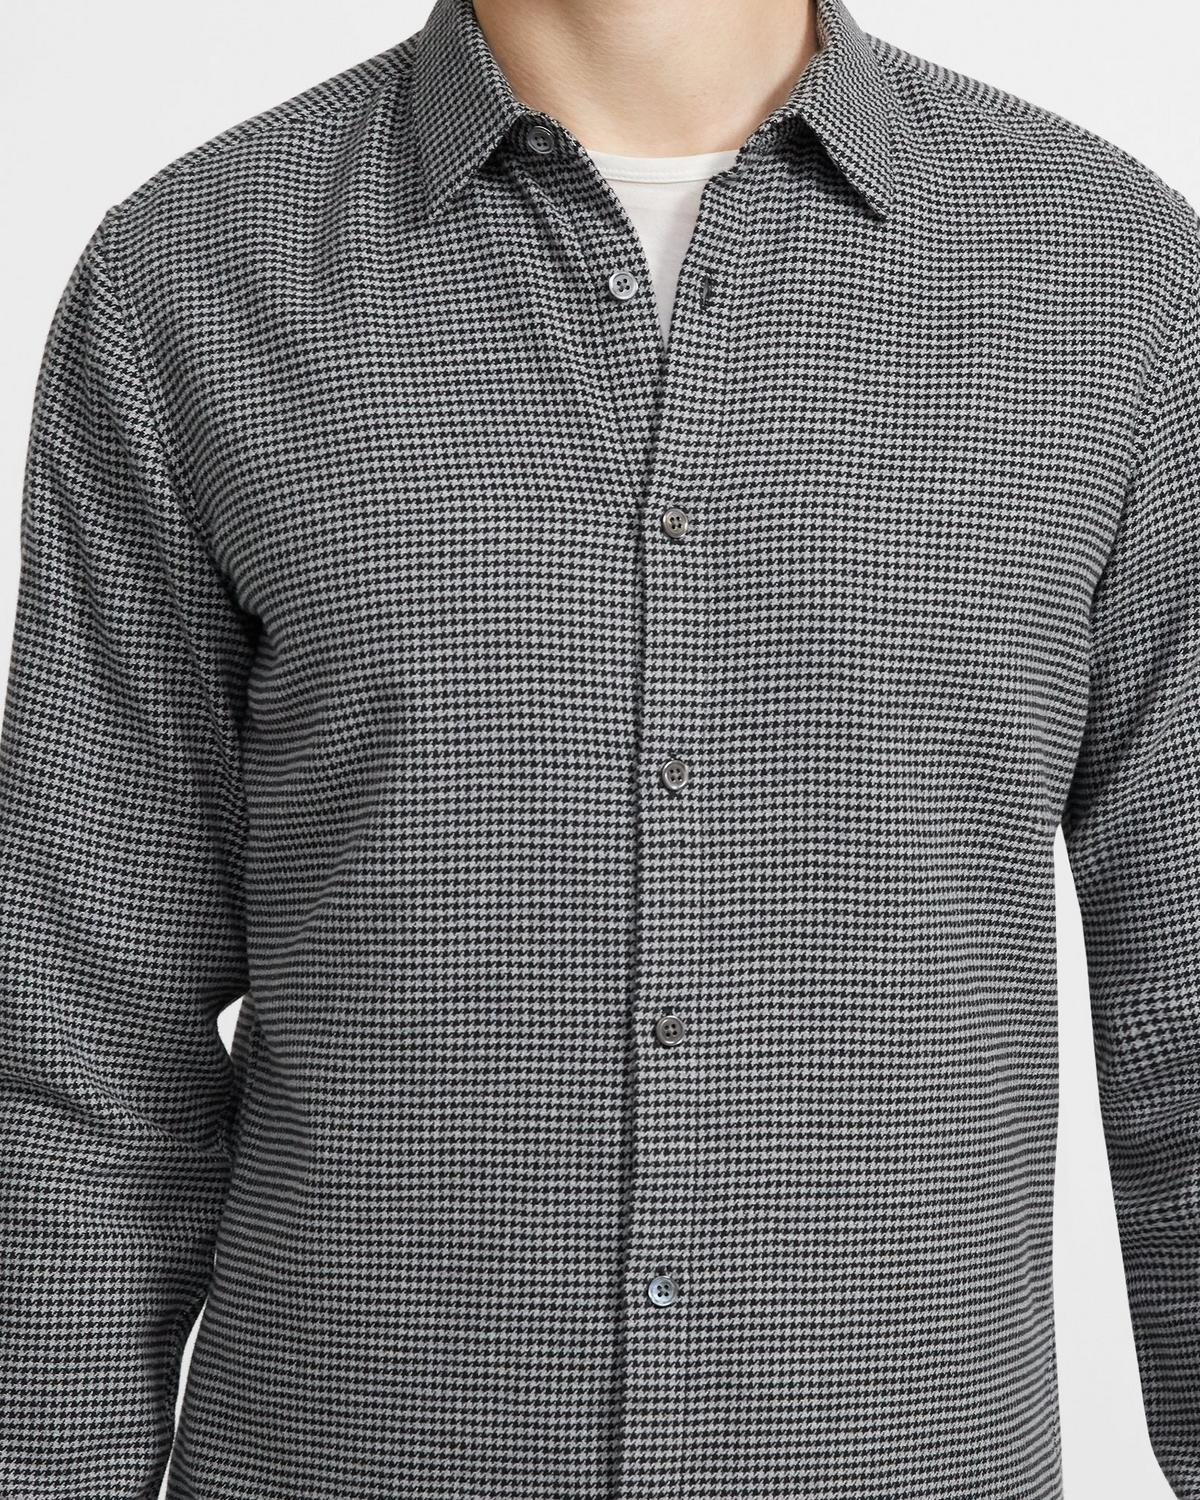 Irving Shirt in Houndstooth Cotton Flannel